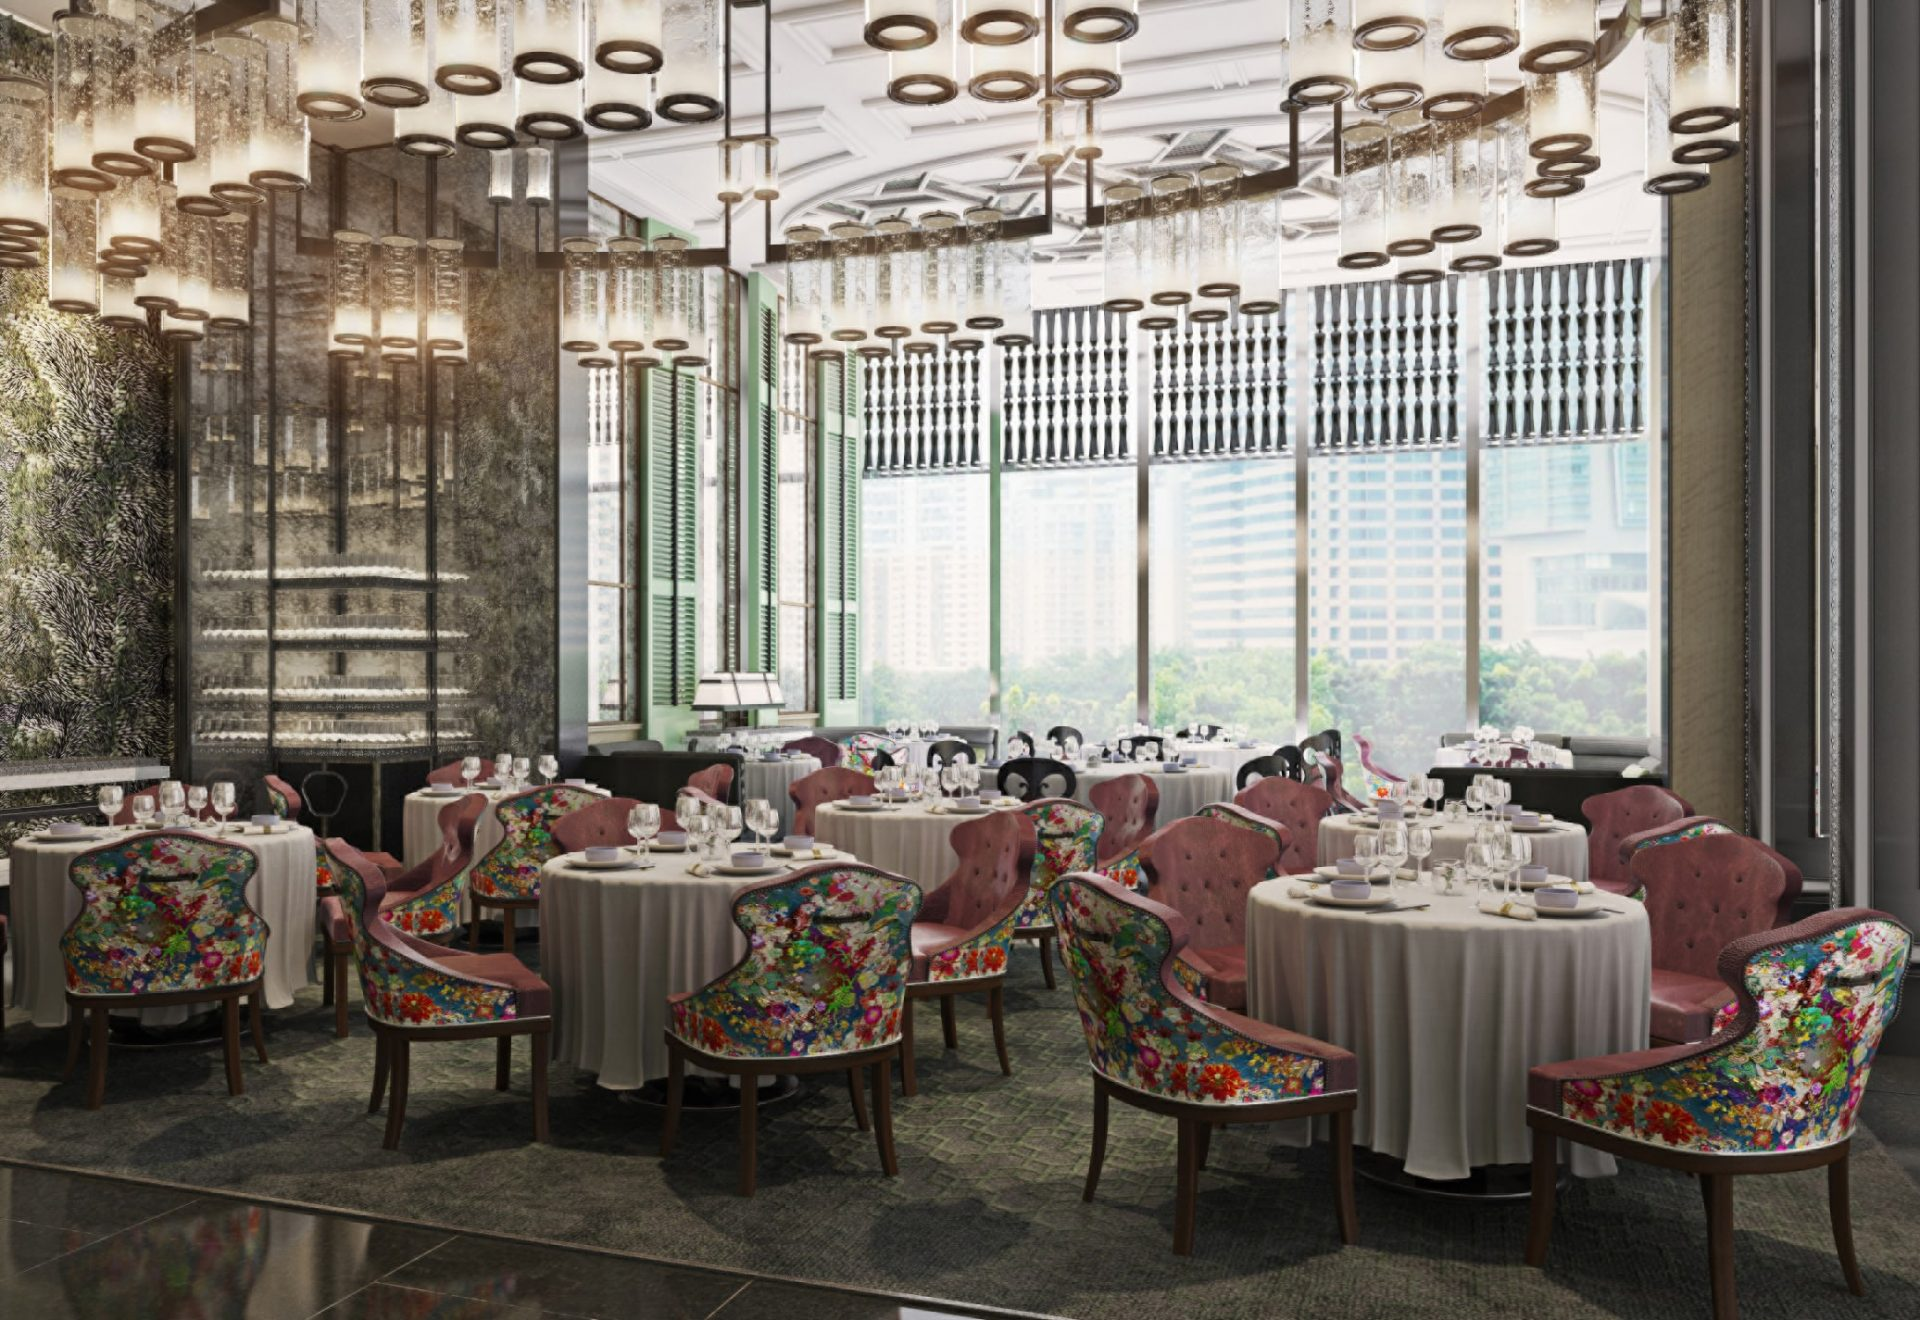 Back in October 2017, we teased you with information that the Four Seasons Hotel Kuala Lumpur would be opening this year. Good news for you, because we have just gotten a sneak peek of how the interior of this luxury hotel is going to look like. Situated next to the Petronas Twin Towers, this 65-storey building will be home to 209 guest rooms and suites, six restaurants and lounges, a spa and wellness centre, and a luxury retail outpost. If you're not keen on just staying over at the Four Seasons as a temporary guest, you'll be glad to know that this skyscraper will also have 242 private residences and 27 serviced apartments. While you're deciding if you're going to be a hotel guest or a private resident, we'll distract you with an epicurean journey through the Four Seasons Hotel Kuala Lumpur. Executive chef Junious Dickerson takes the lead from the six restaurants and lounges. These include Yun House, a Chinese restaurant focusing on Cantonese cuisine; Curate, the all-day buffet restaurant; Pool Bar & Grill, a poolside dining area serving Middle Eastern cuisine; The Lounge at Four Seasons, where guests can enjoy breakfast and afternoon tea; Bar Trigona, a cocktail bar serving customisable creative cocktails made with local and sustainable ingredients; and finally,Decadent by Four Seasons, the local patisserie shop that stocks fine pastries, baked goods, desserts, gelato, and bespoke chocolate pralines. However, gastronomical indulgences are not the only decadence you can get at the Four Seasons. Book a slot at The Spa at Four Seasons to get your fill of luxurious pampering. The spa is an expansive one that features eight treatment rooms, which also includes two couples' rooms. A peek into the spa menu shows that the treatments are inspired by ancient wellness practices from Southeast Asia. Inside the Fitness Centre is a gym that has the latest weight training and physicalfitness equipment, all whilst overlooking the KL skyline. The Four Seasons Hotel Kuala Lumpur i